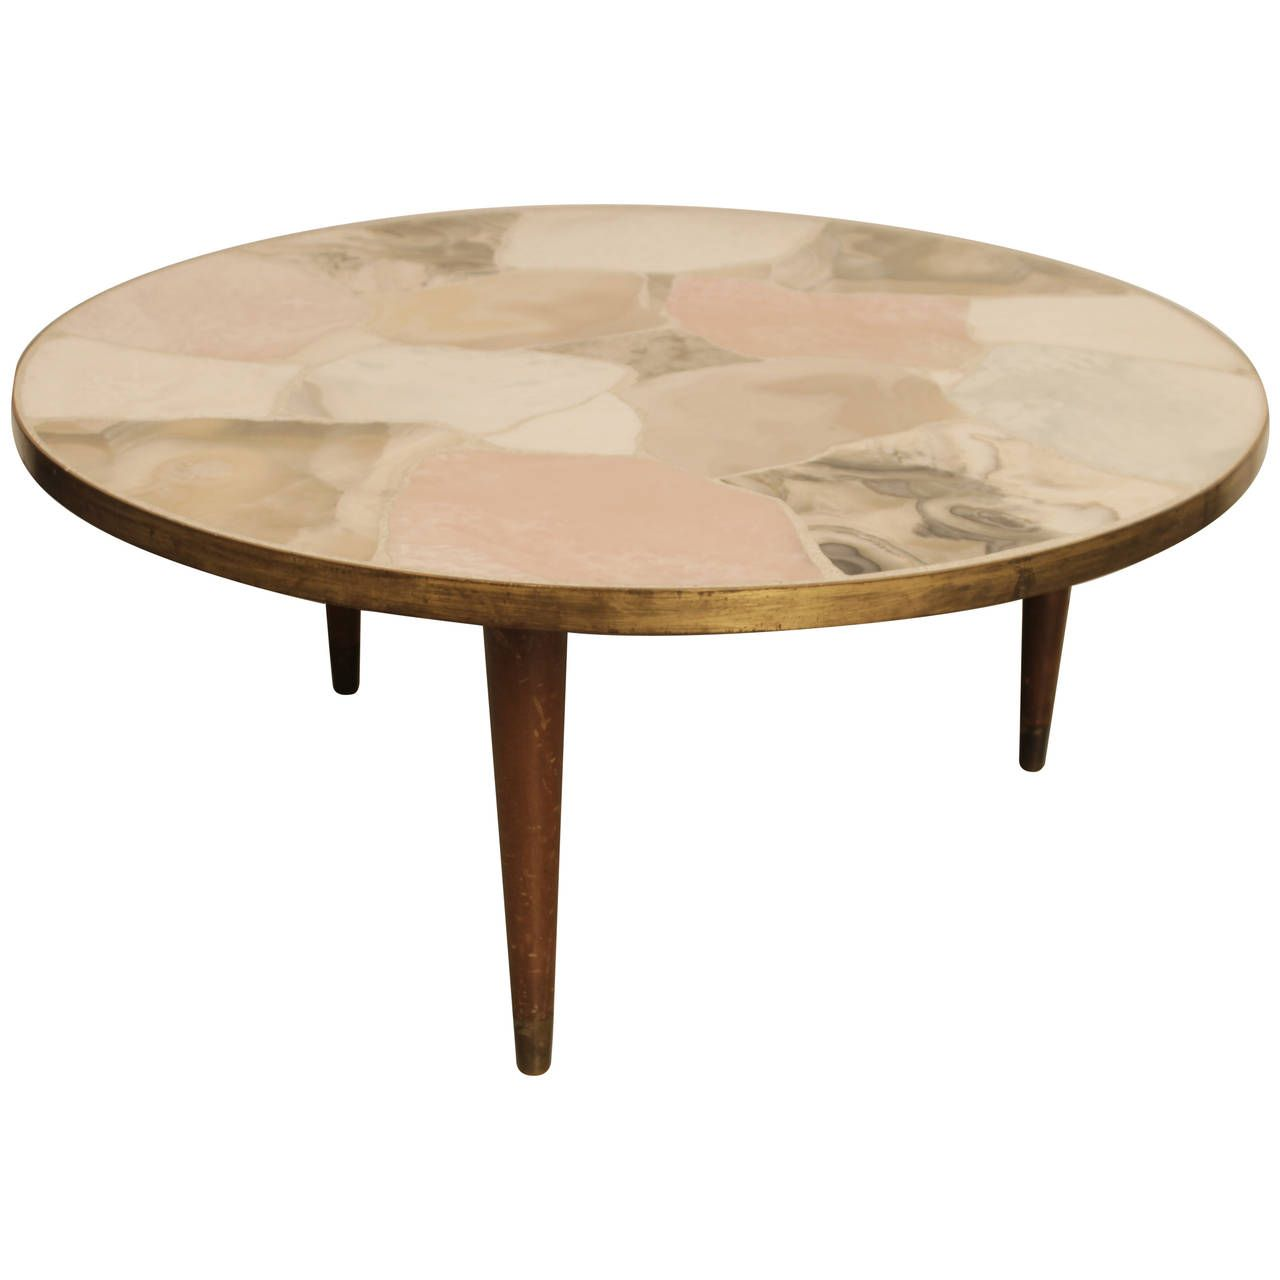 Vintage Italian Circular Brass And Marble Coffee Table 1stdibs Com Coffee Table Antique Coffee Tables Marble Coffee Table [ 1280 x 1280 Pixel ]